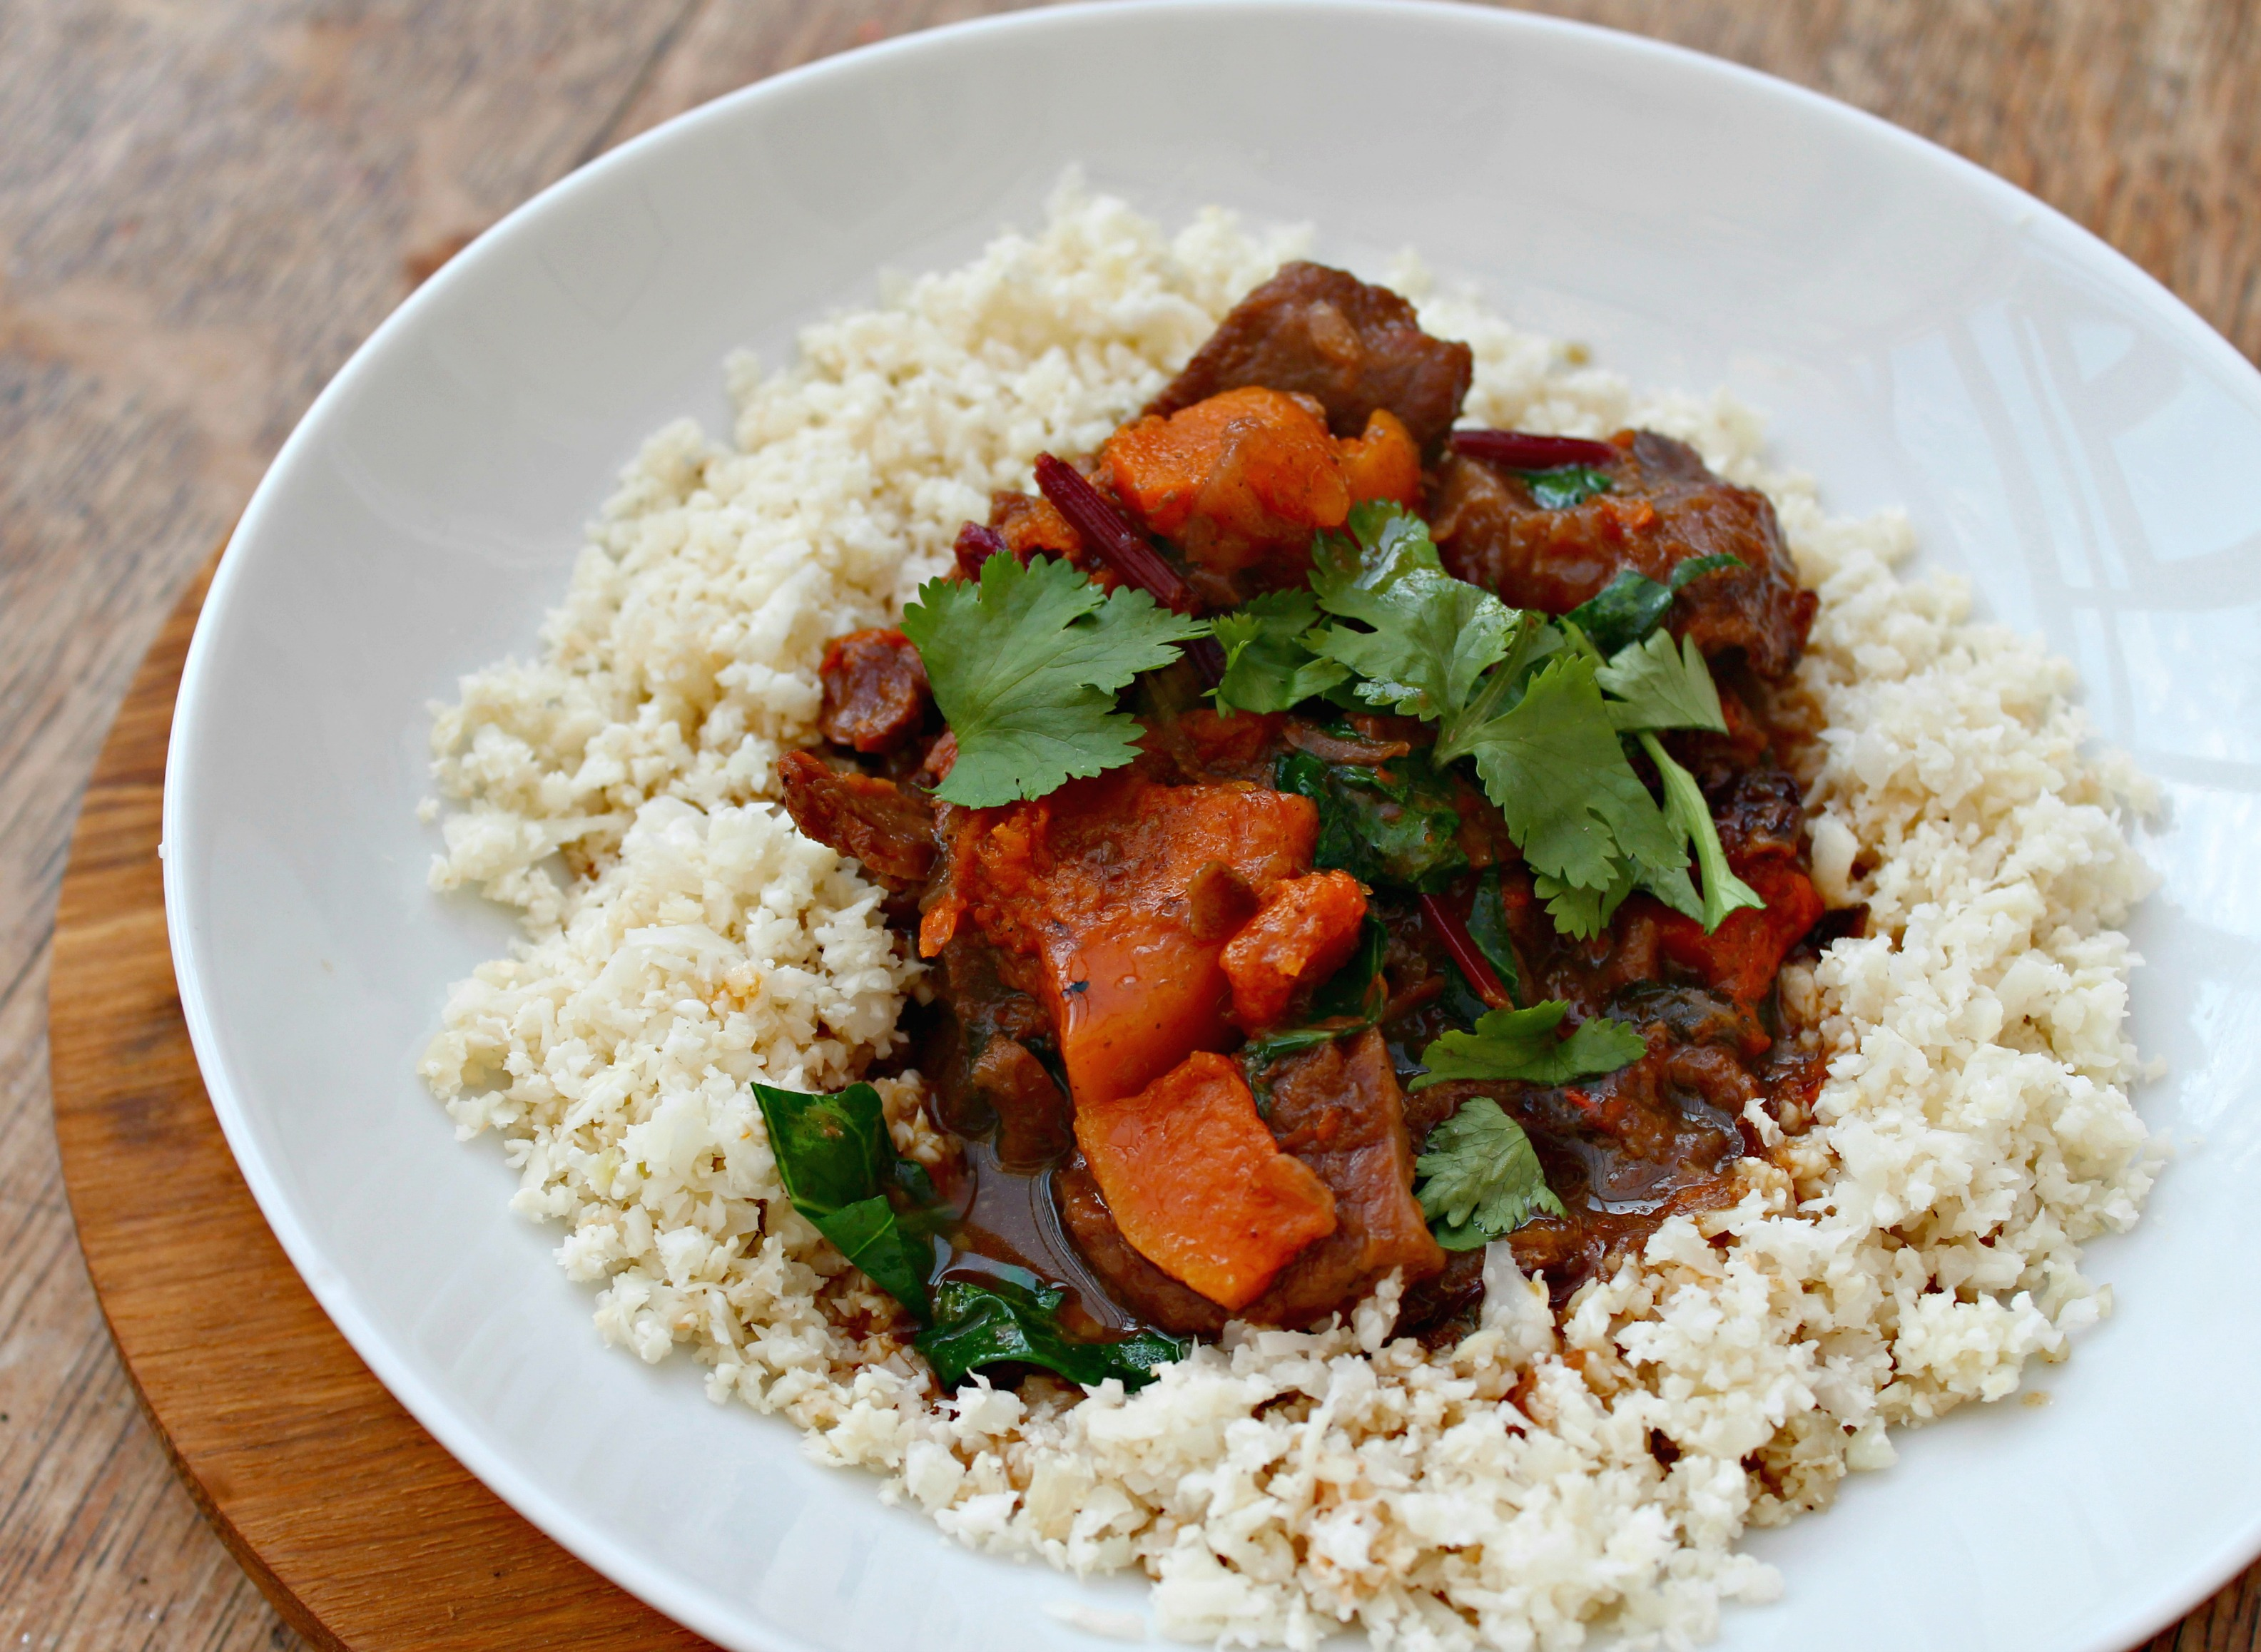 Note: This Moroccan Beef Stew can also be made in a crockpot ...